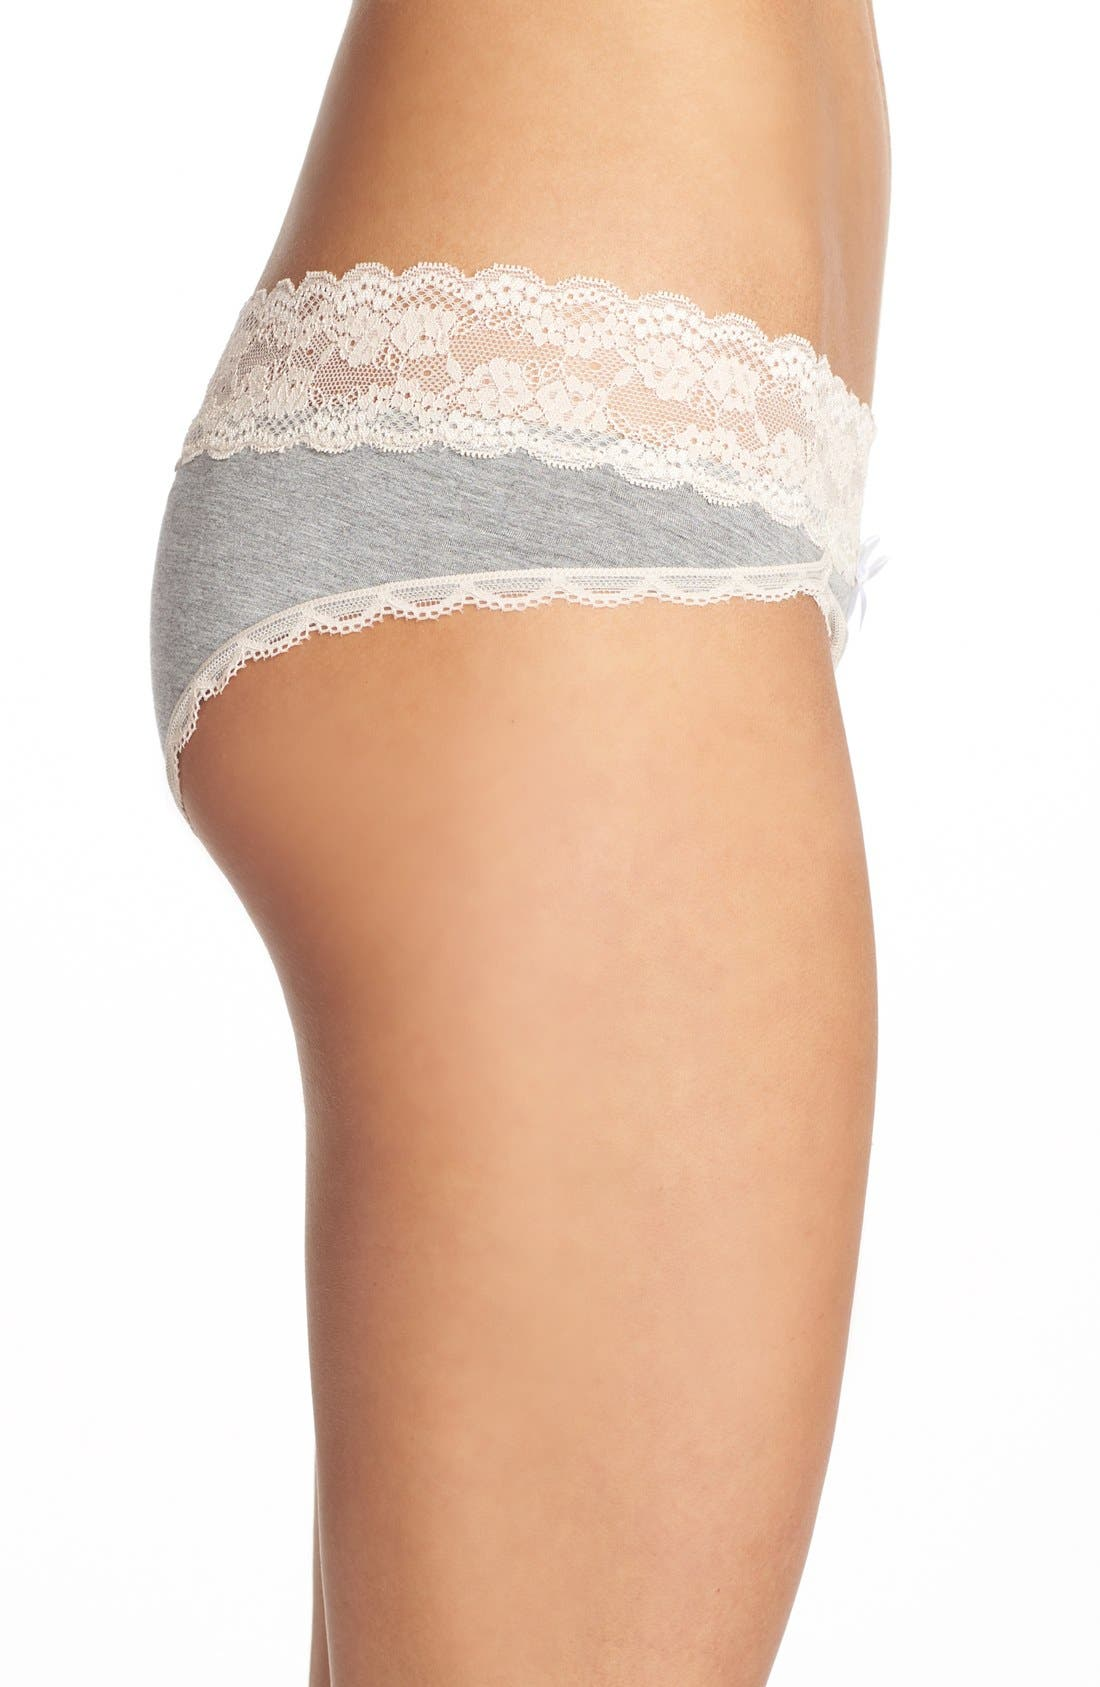 Ahna Hipster Panties,                             Alternate thumbnail 4, color,                             HEATHER GREY/ SEASHELL